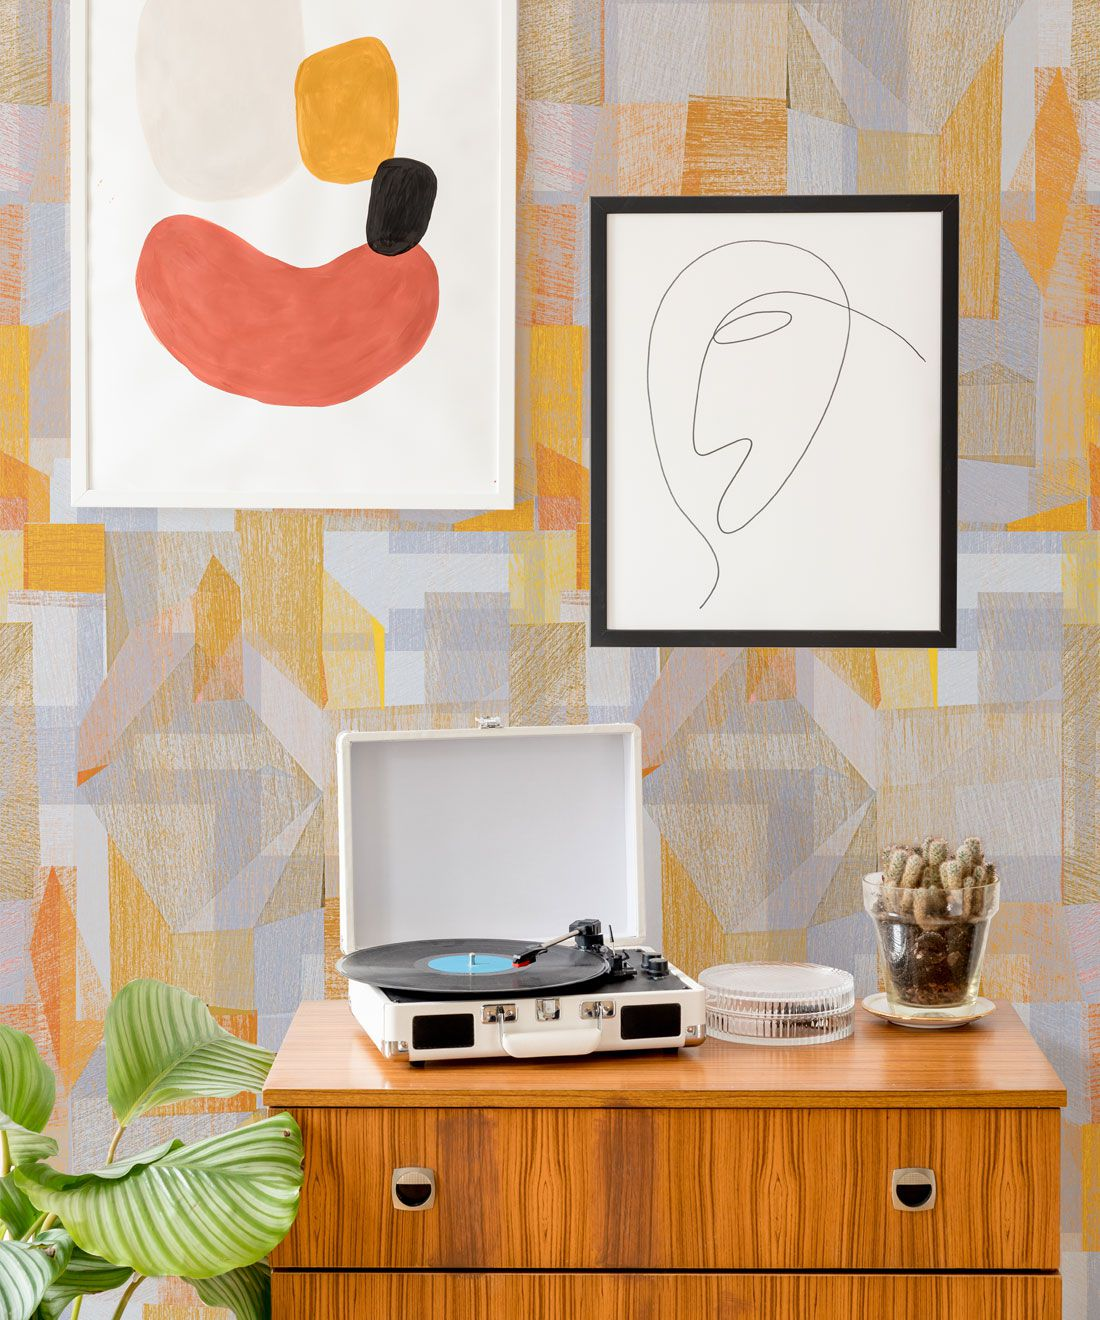 Chimera Wallpaper by Simcox • Color Yellow • Abstract Wallpaper • Geometric Wallpaper • insitu